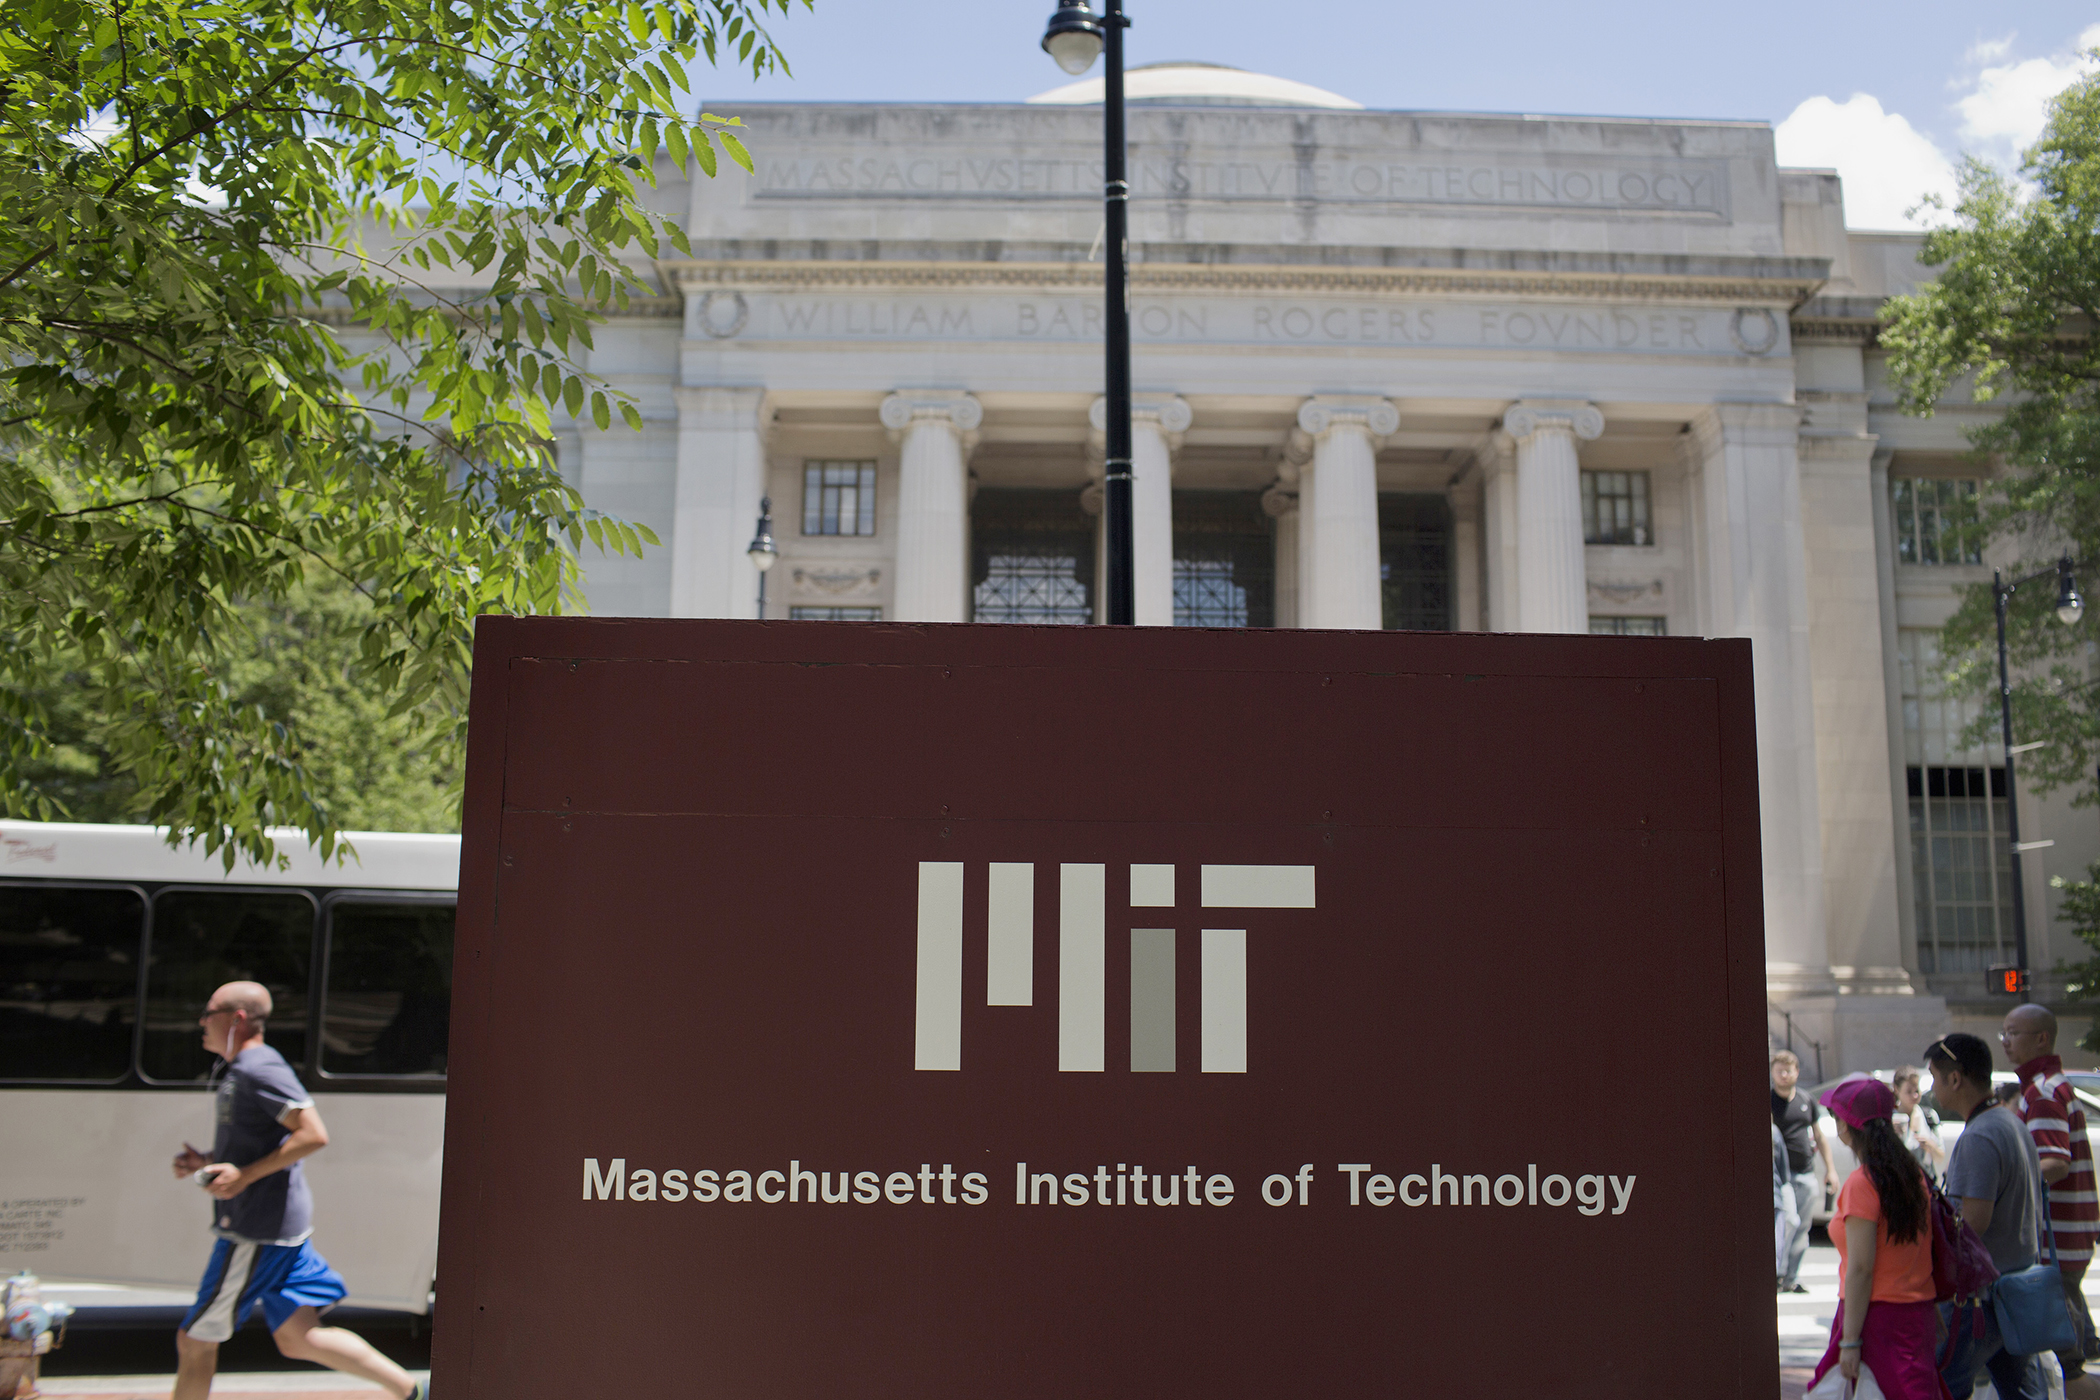 Massachusetts Institute of Technology (MIT) campus in Cambridge,